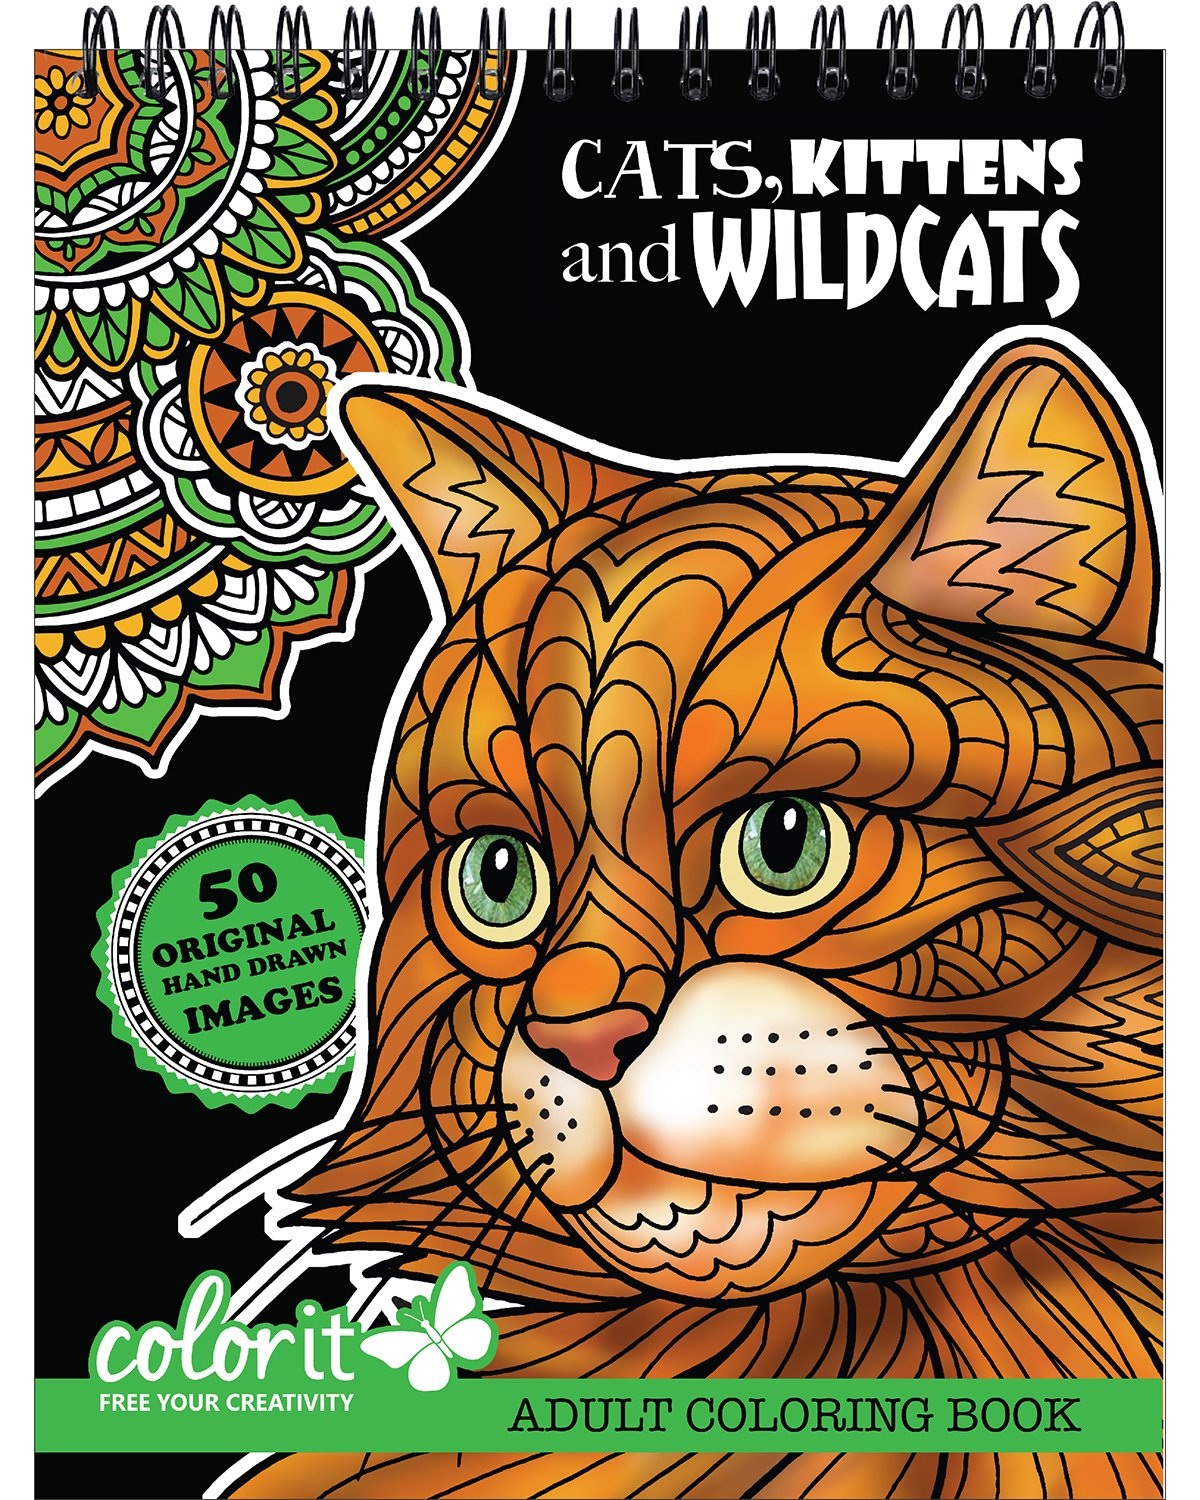 Cats Kittens Wildcats Adult Coloring product image